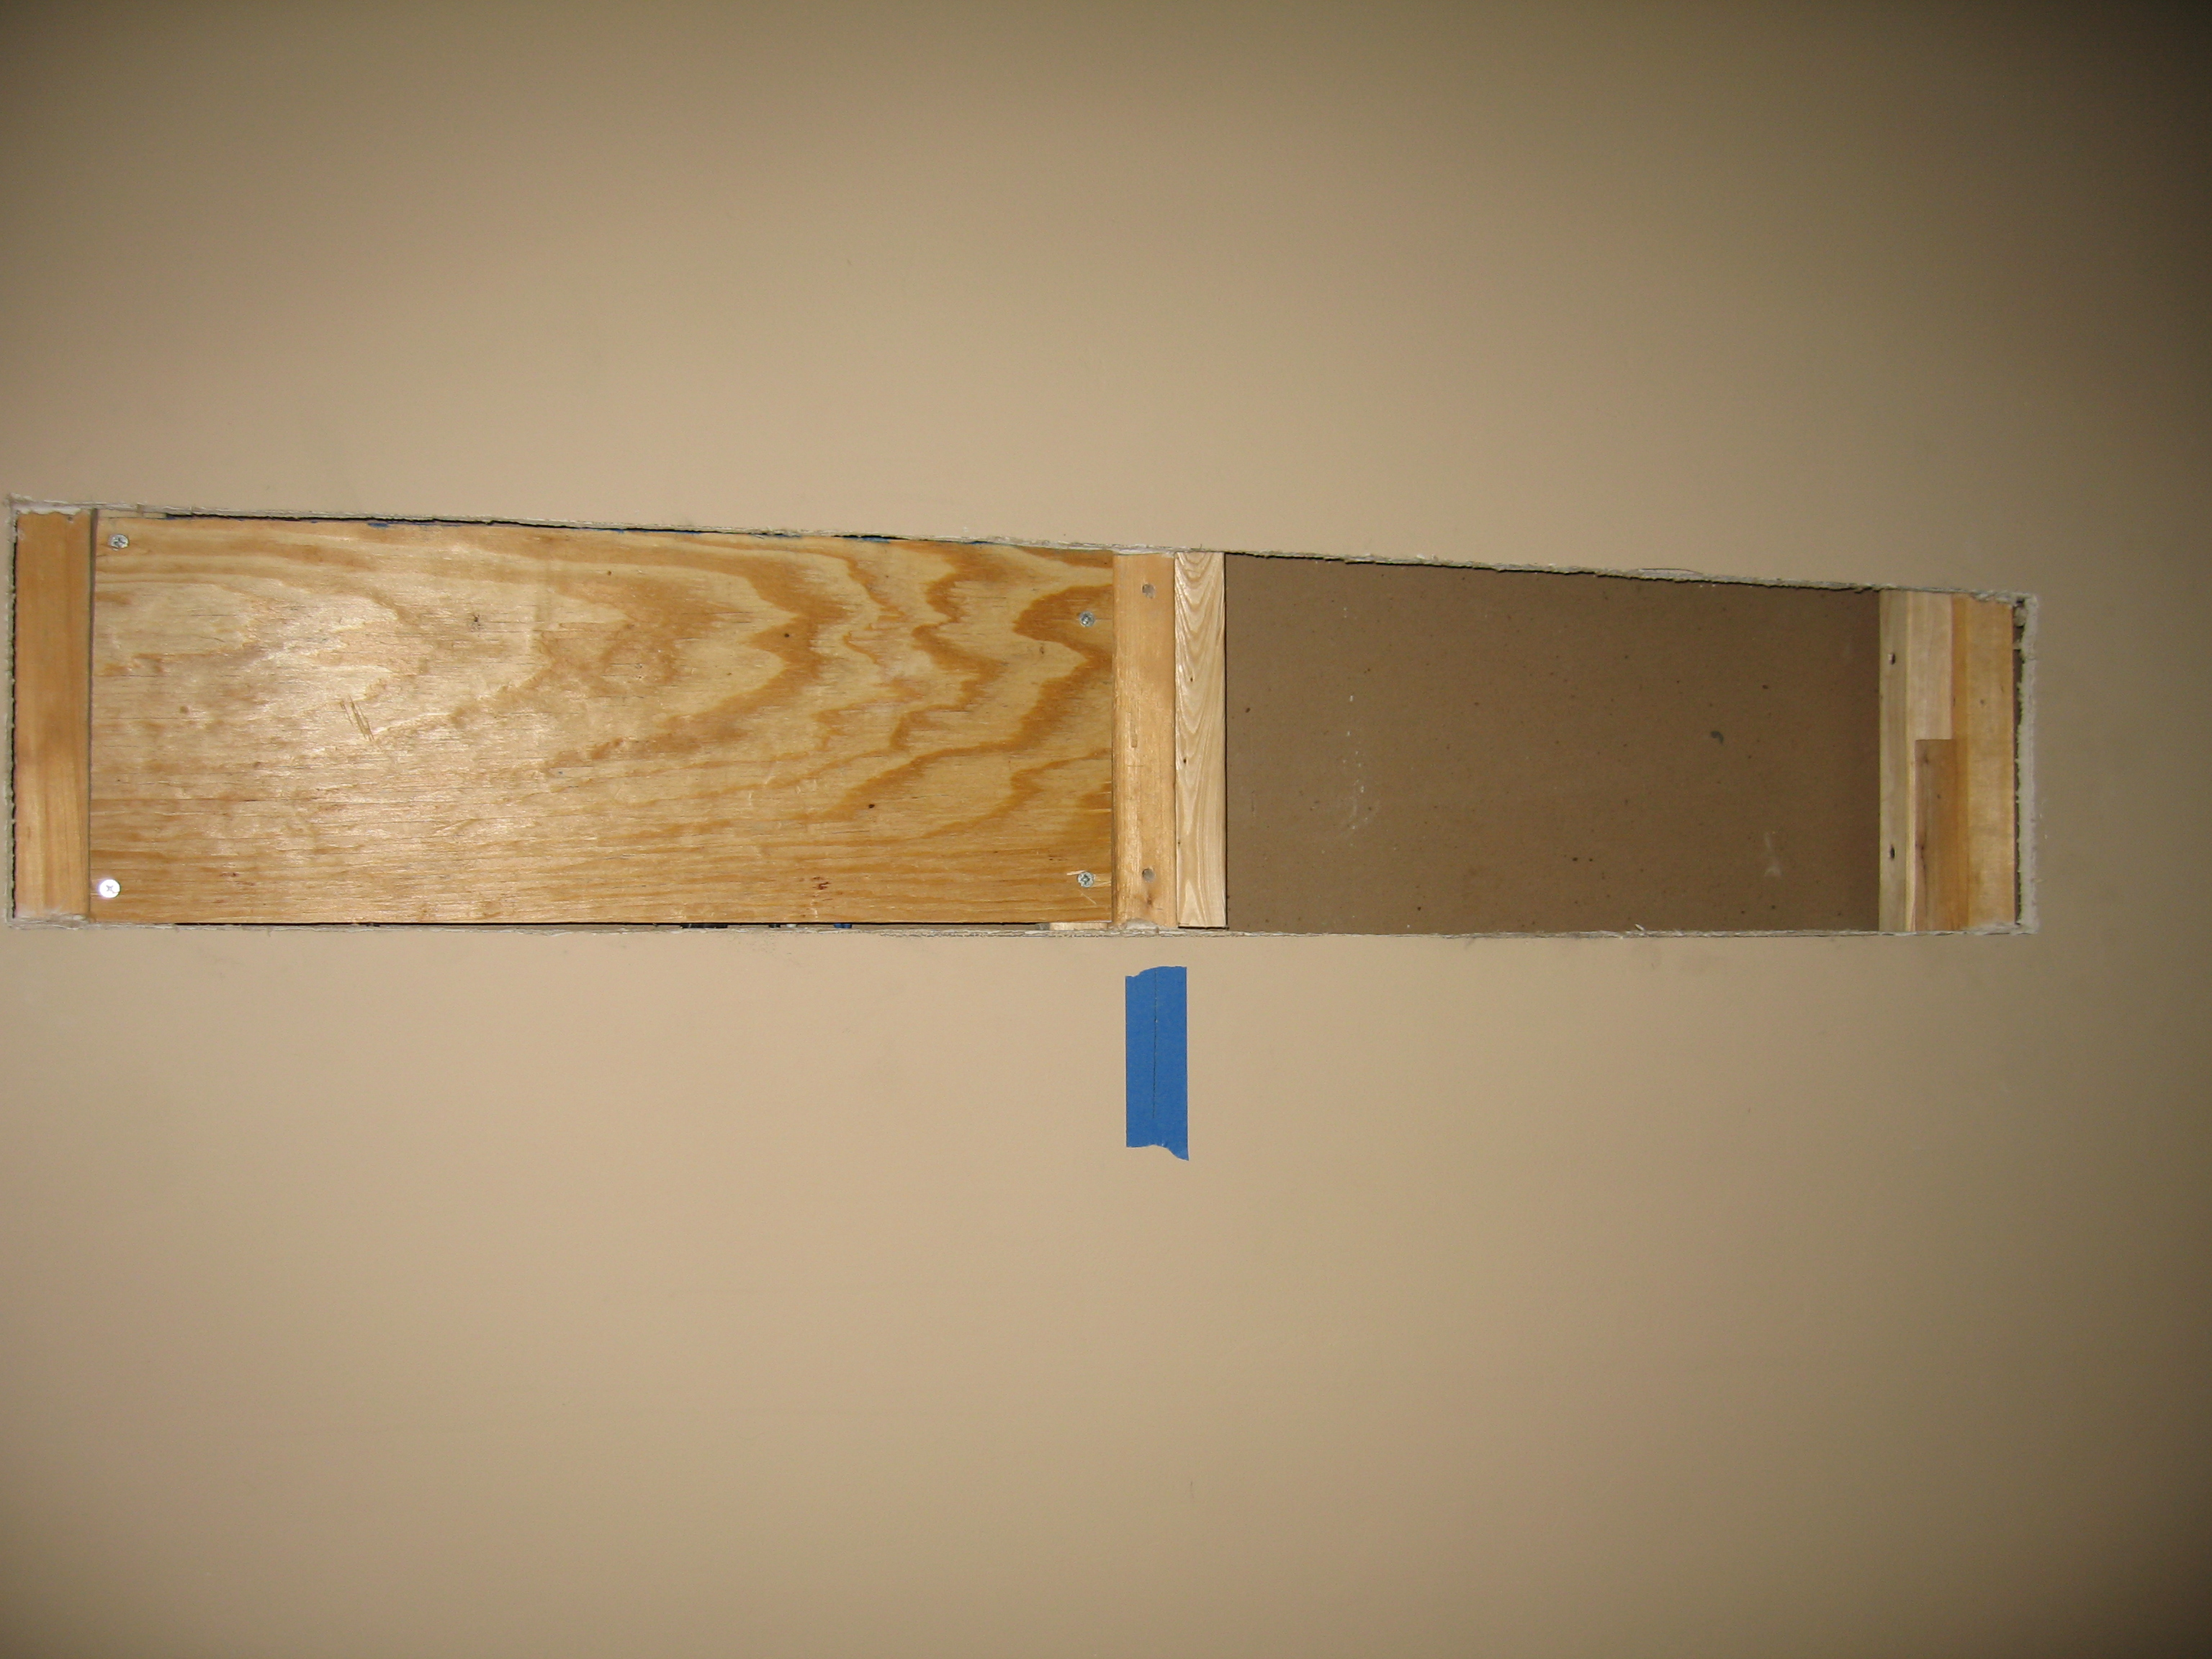 Hanging Cabinets On Drywall No Studs Image And Shower